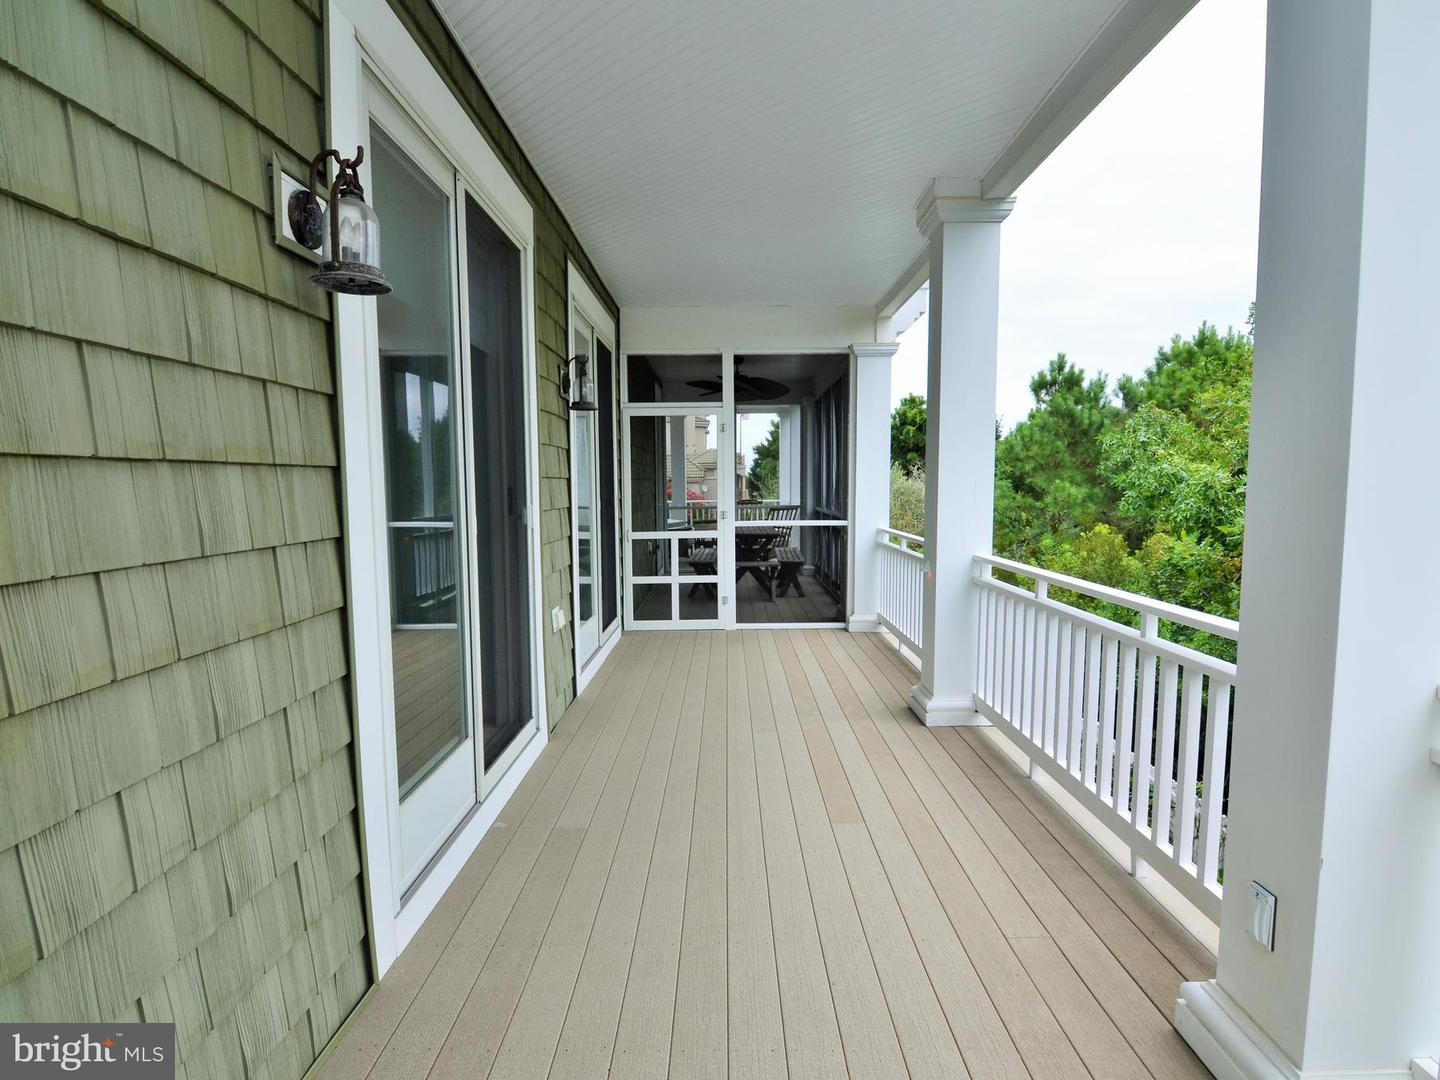 1002293530-300500808401-2018-09-25-15-08-25 31 Hall Ave | Rehoboth Beach, De Real Estate For Sale | MLS# 1002293530  - Suzanne Macnab